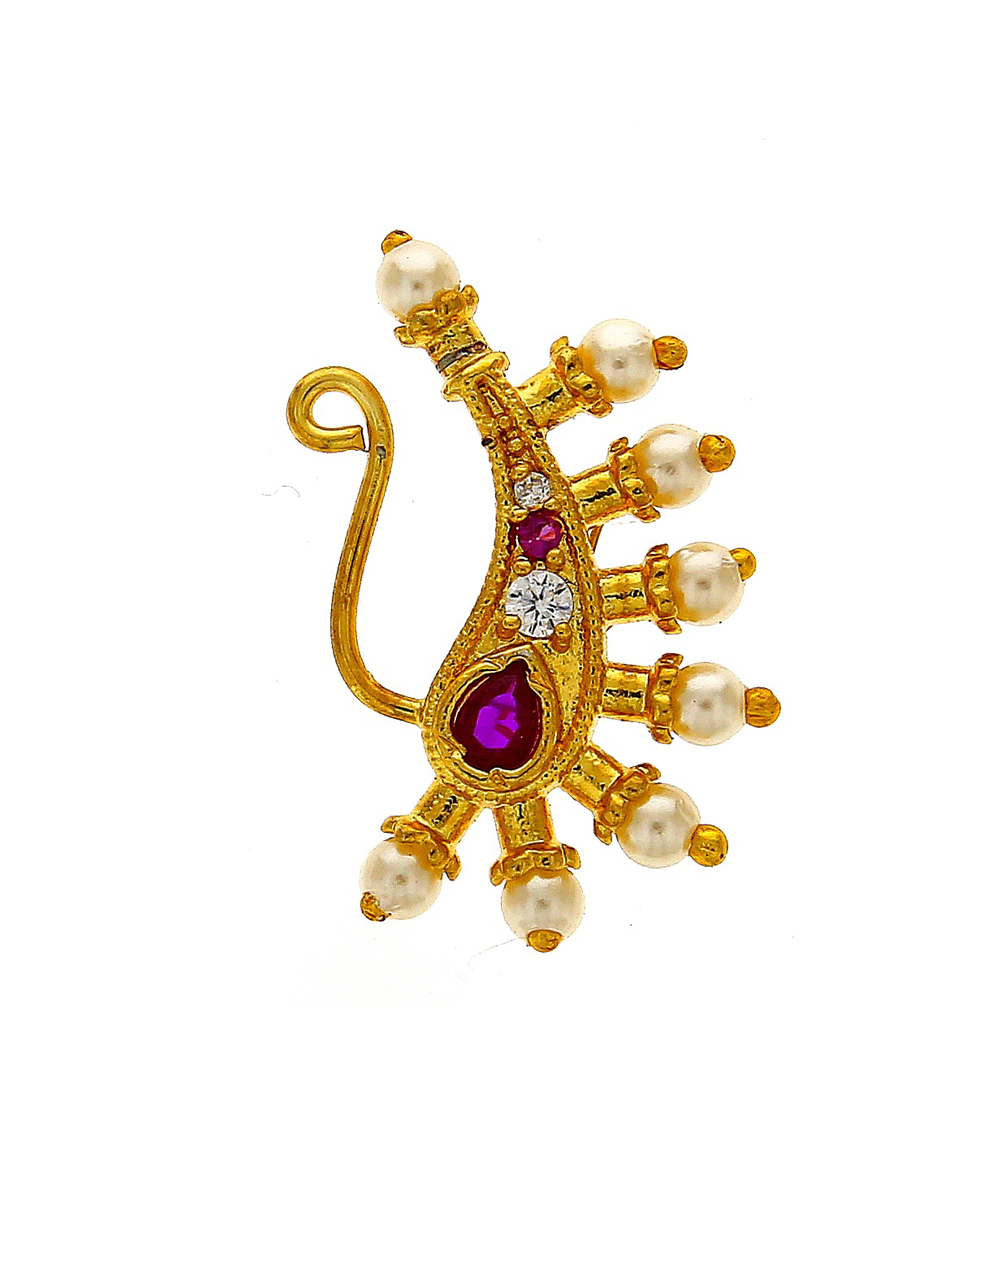 Very Classy Golden Finish Encrusted With Pink and White Stone Maharashtrian Nath.